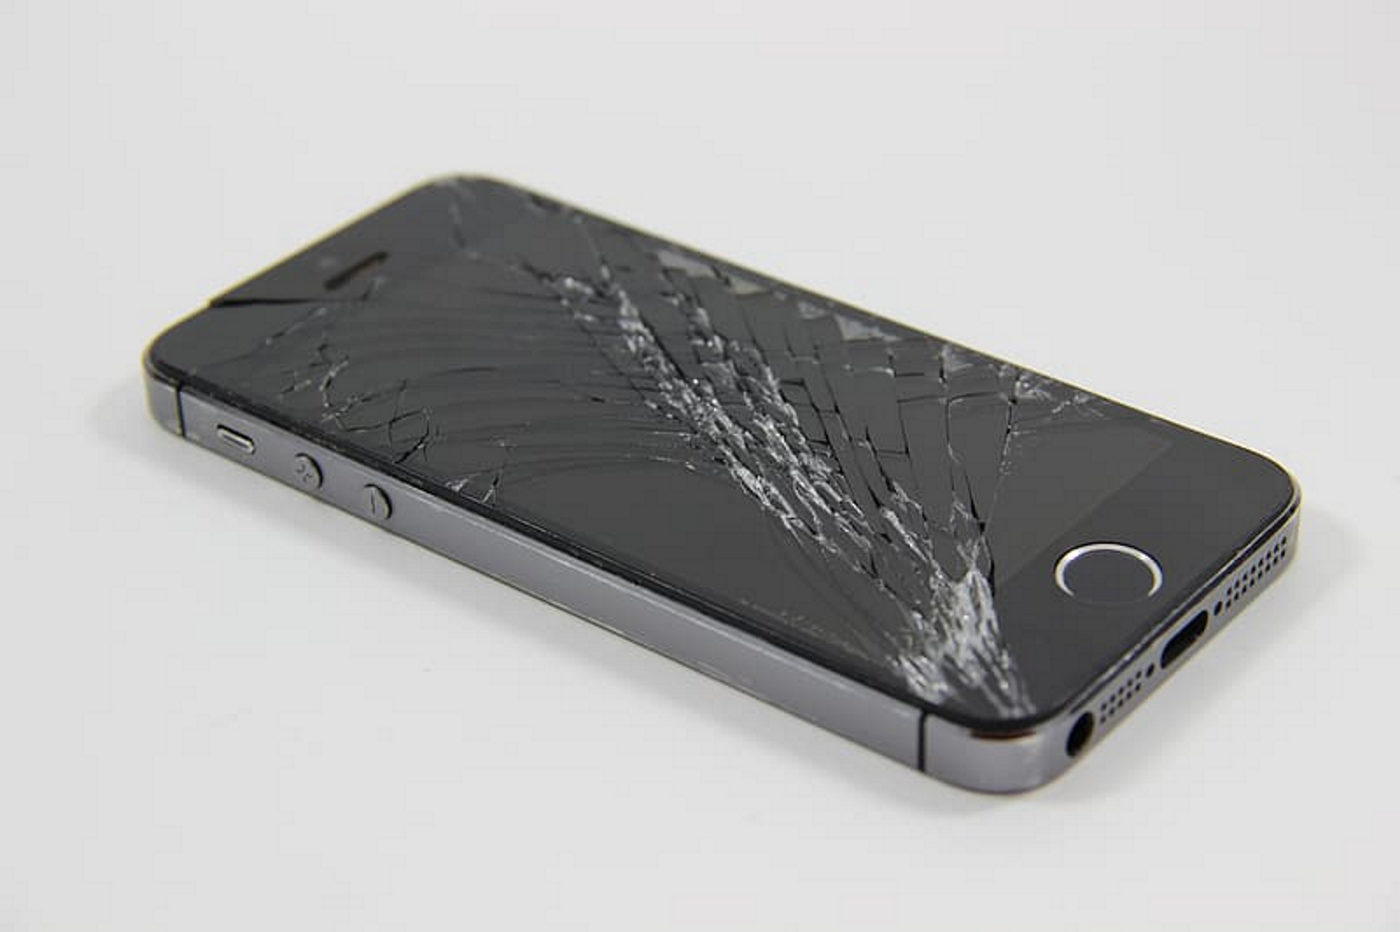 Photo of an iPhone with a cracked screen